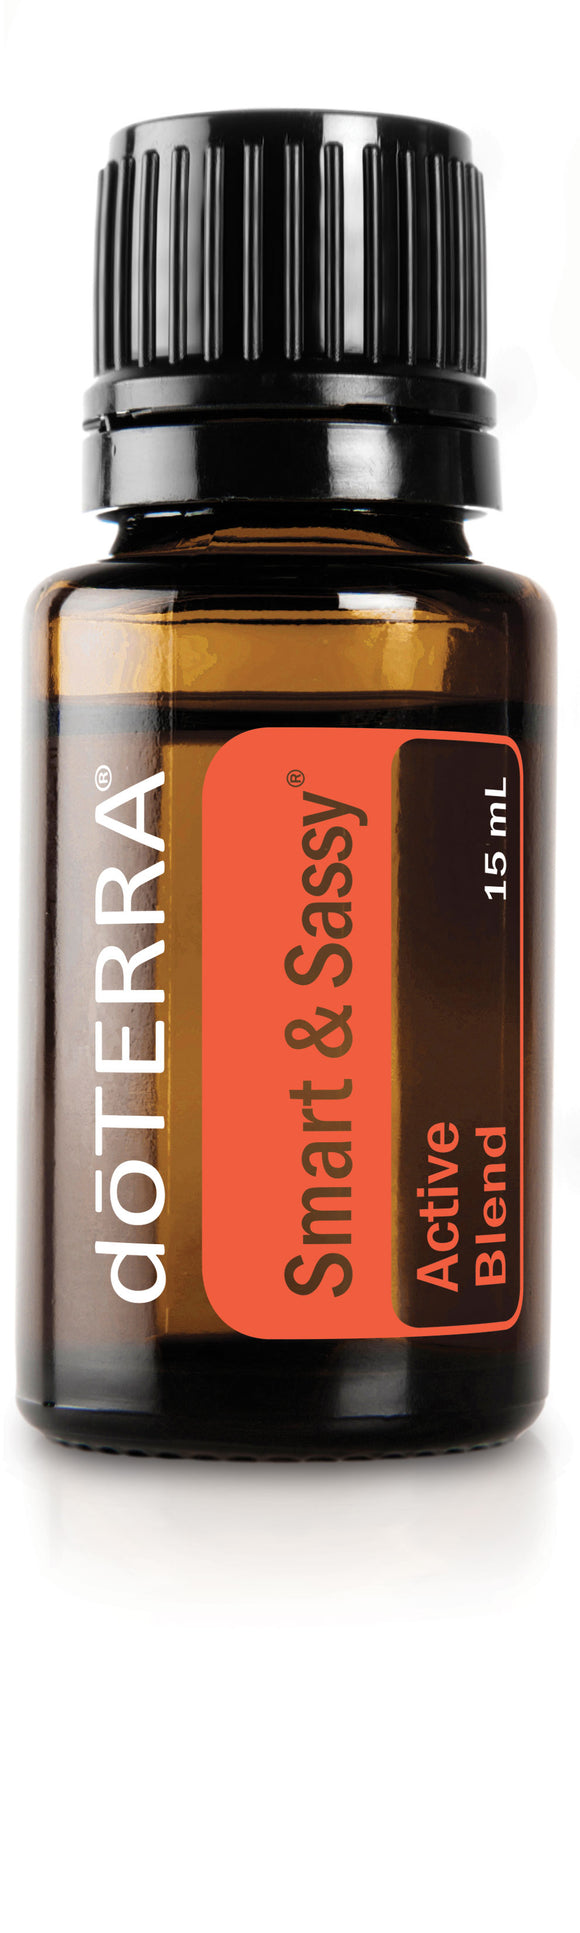 dōTERRA Smart and Sassy Oil Blend 15ml - CUSTOM AND ESSENTIALS